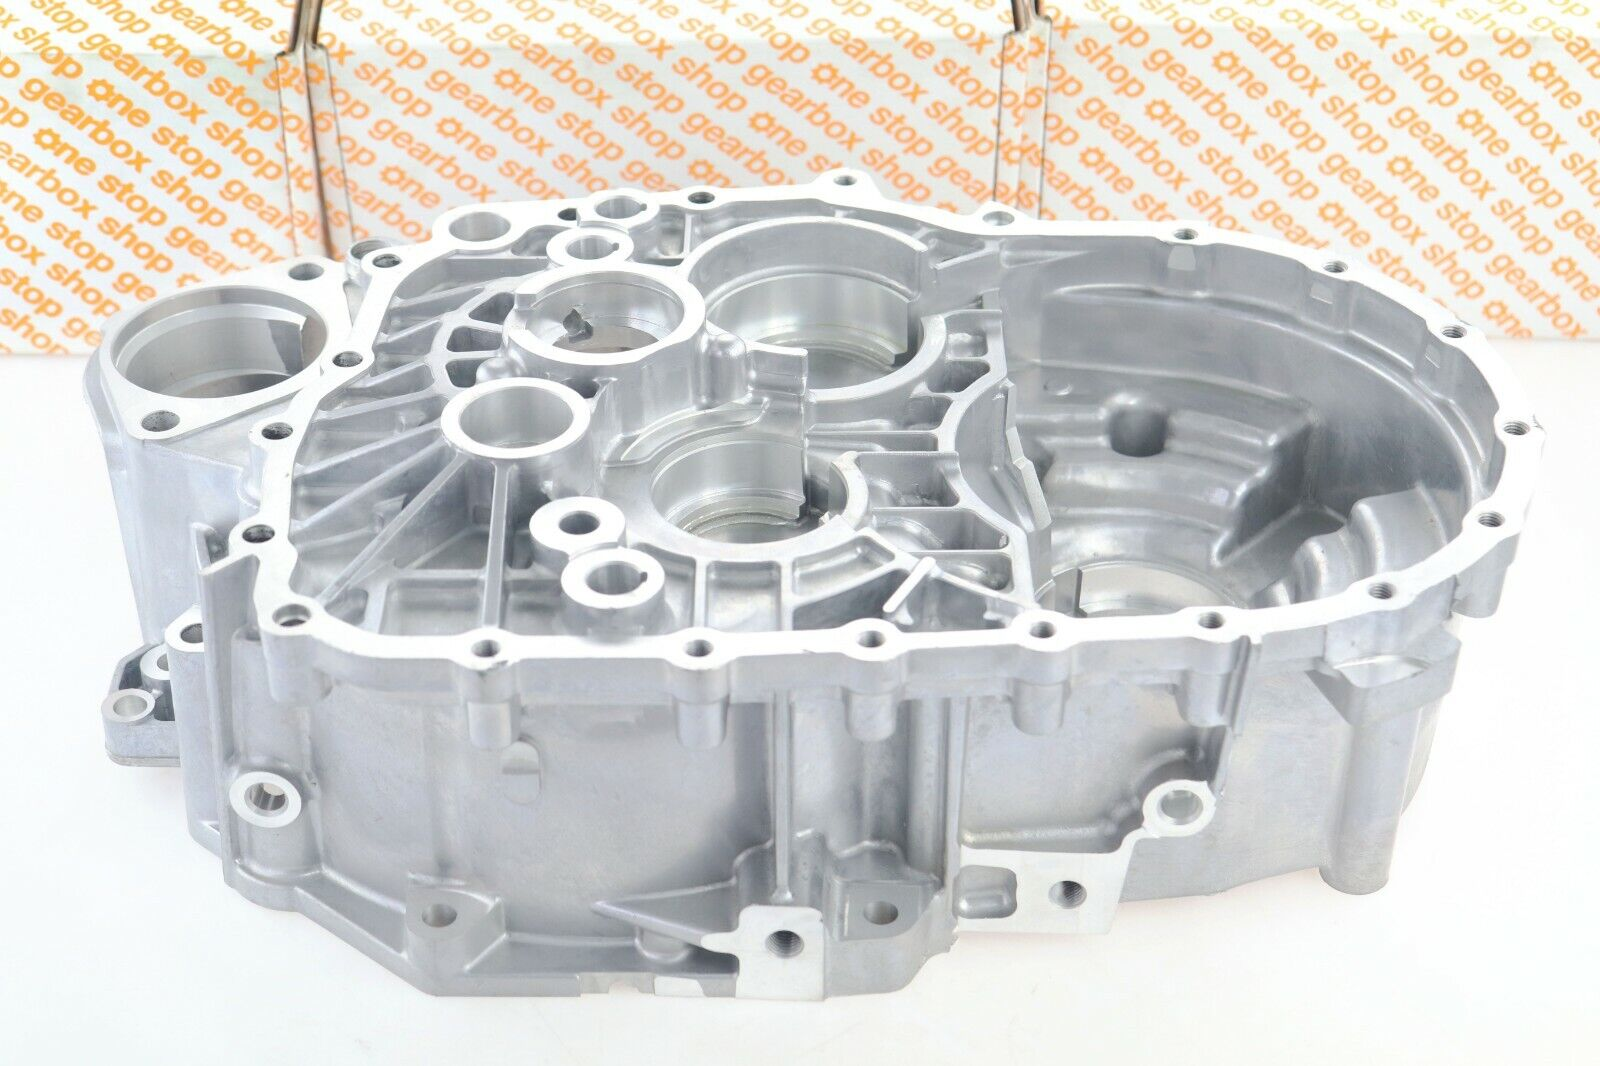 Details about VW, AUDI 02M 02Q 6 SPEED MANUAL GEARBOX CLUTCH BELL HOUSING  CASE 02Q301107AE